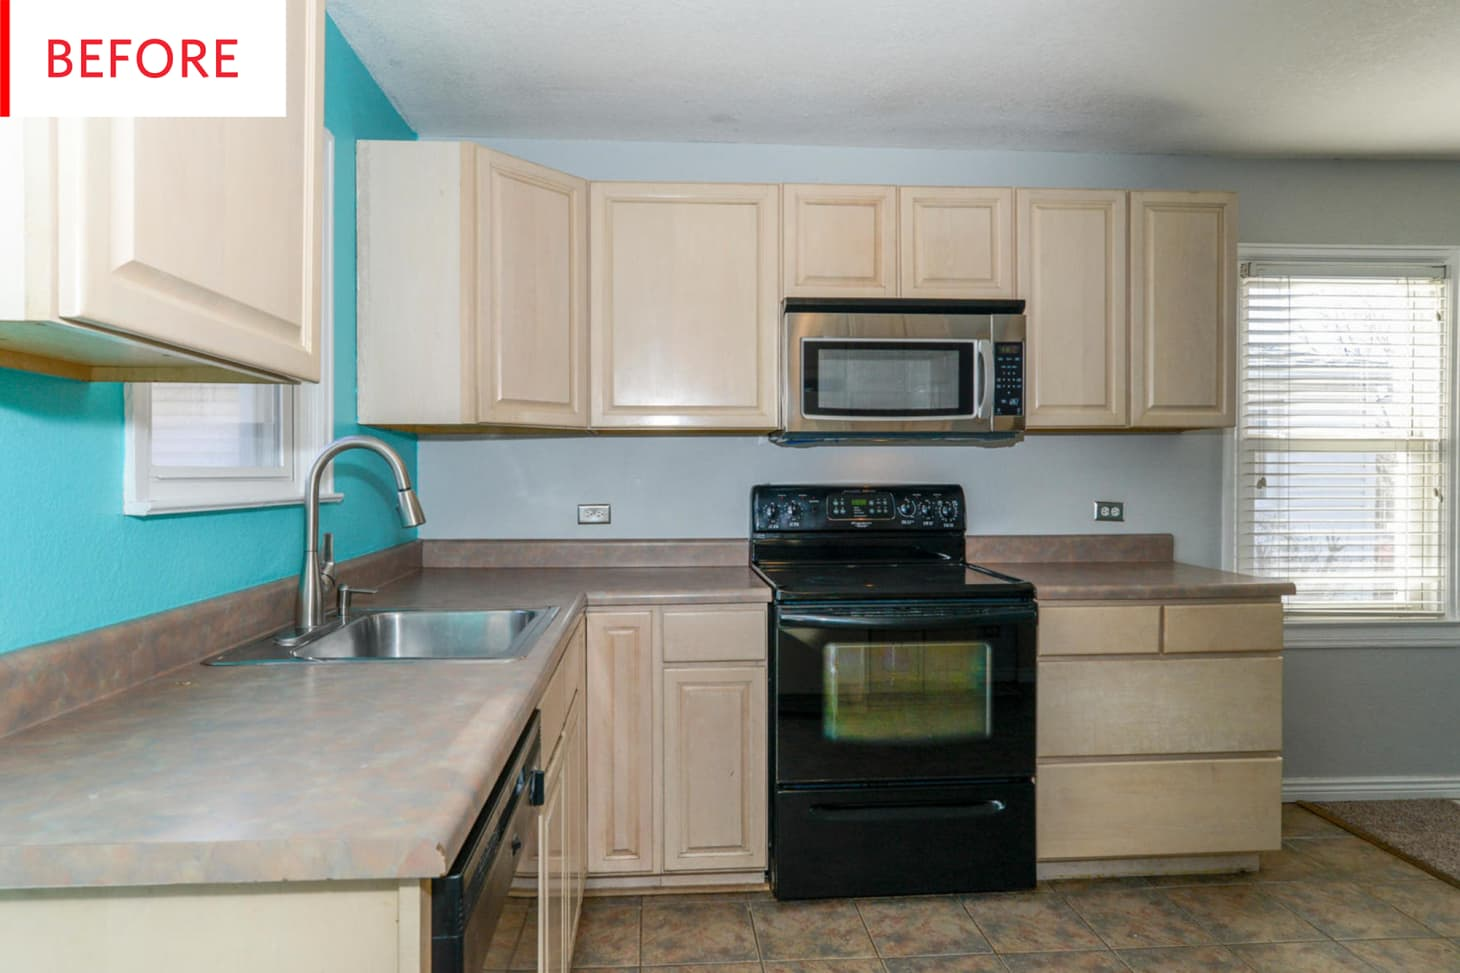 Ikea Kitchen Design 7k Cost Makeover Before After